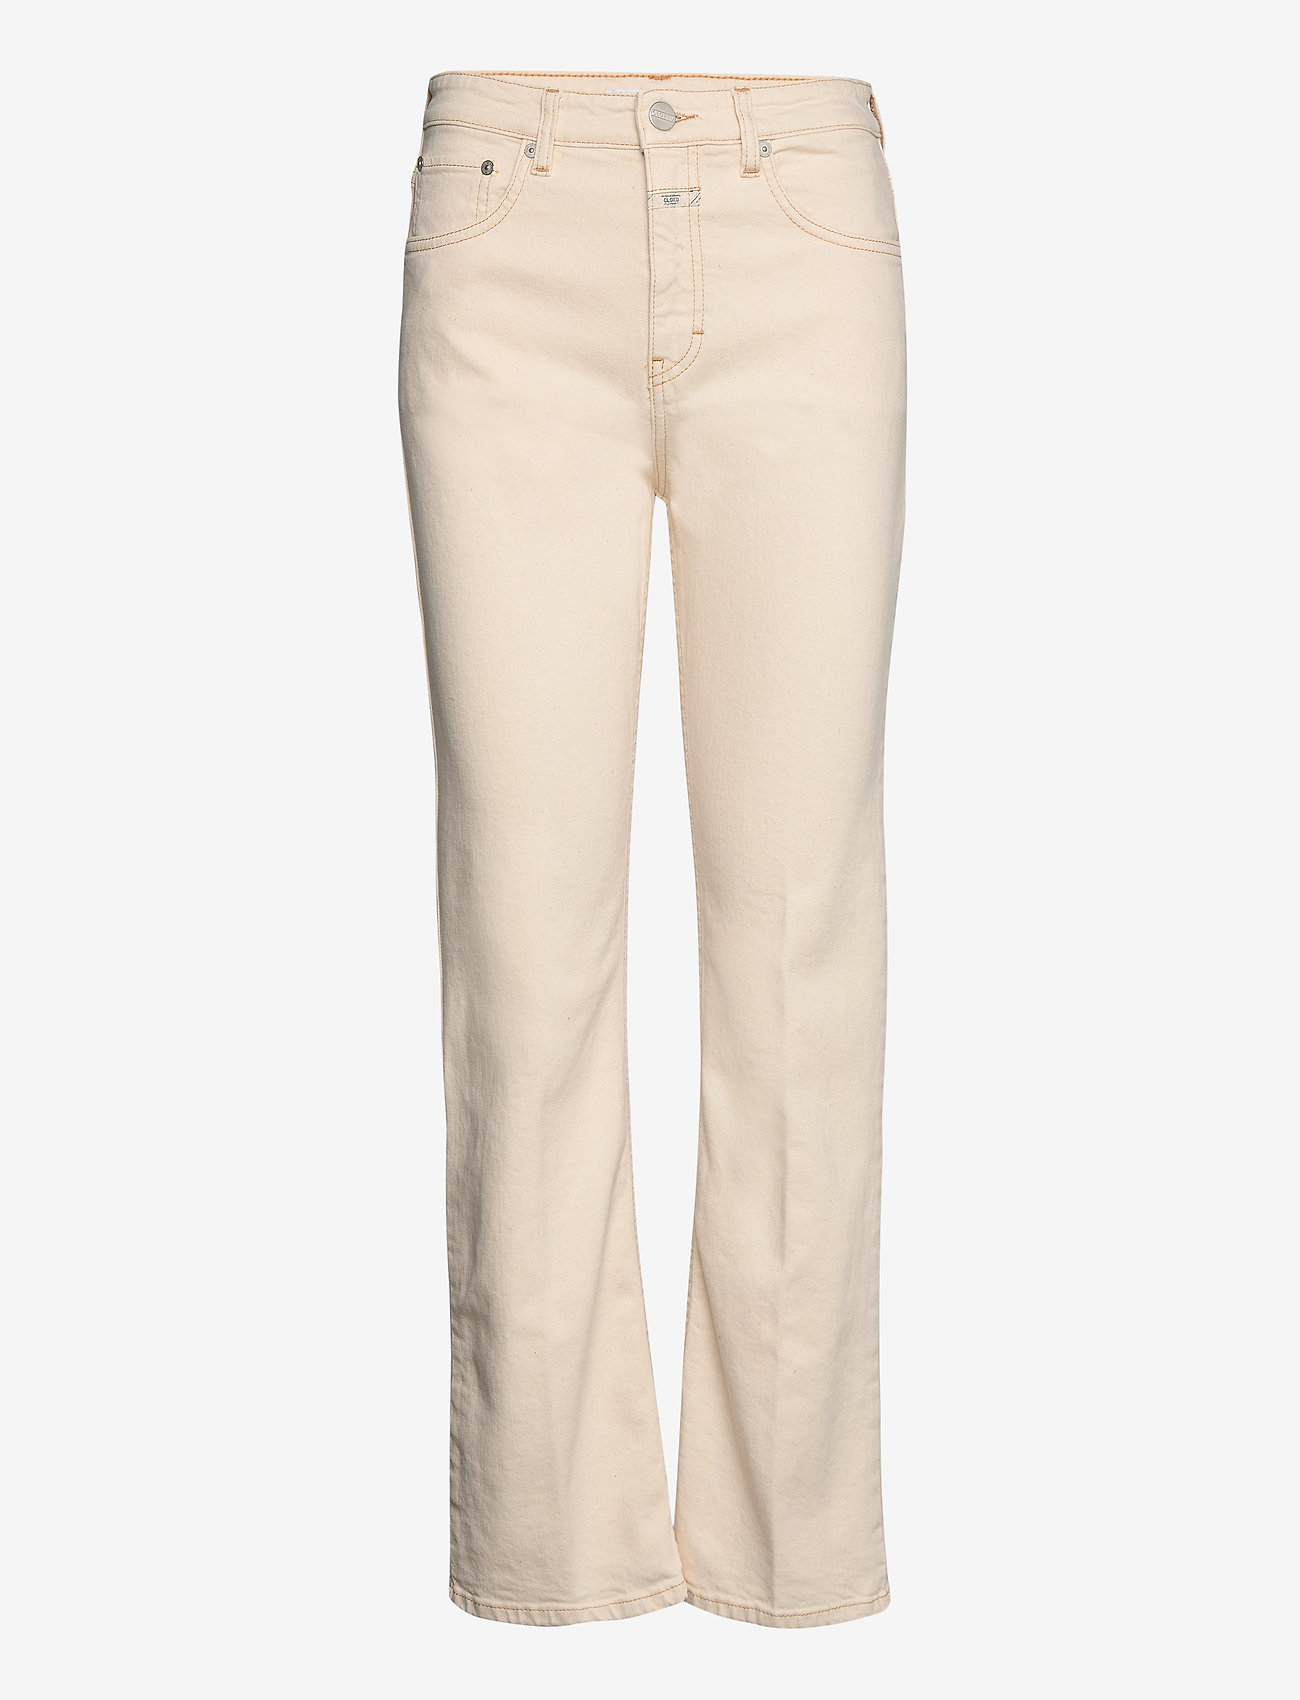 Closed - womens pant - schlaghosen - creme - 0